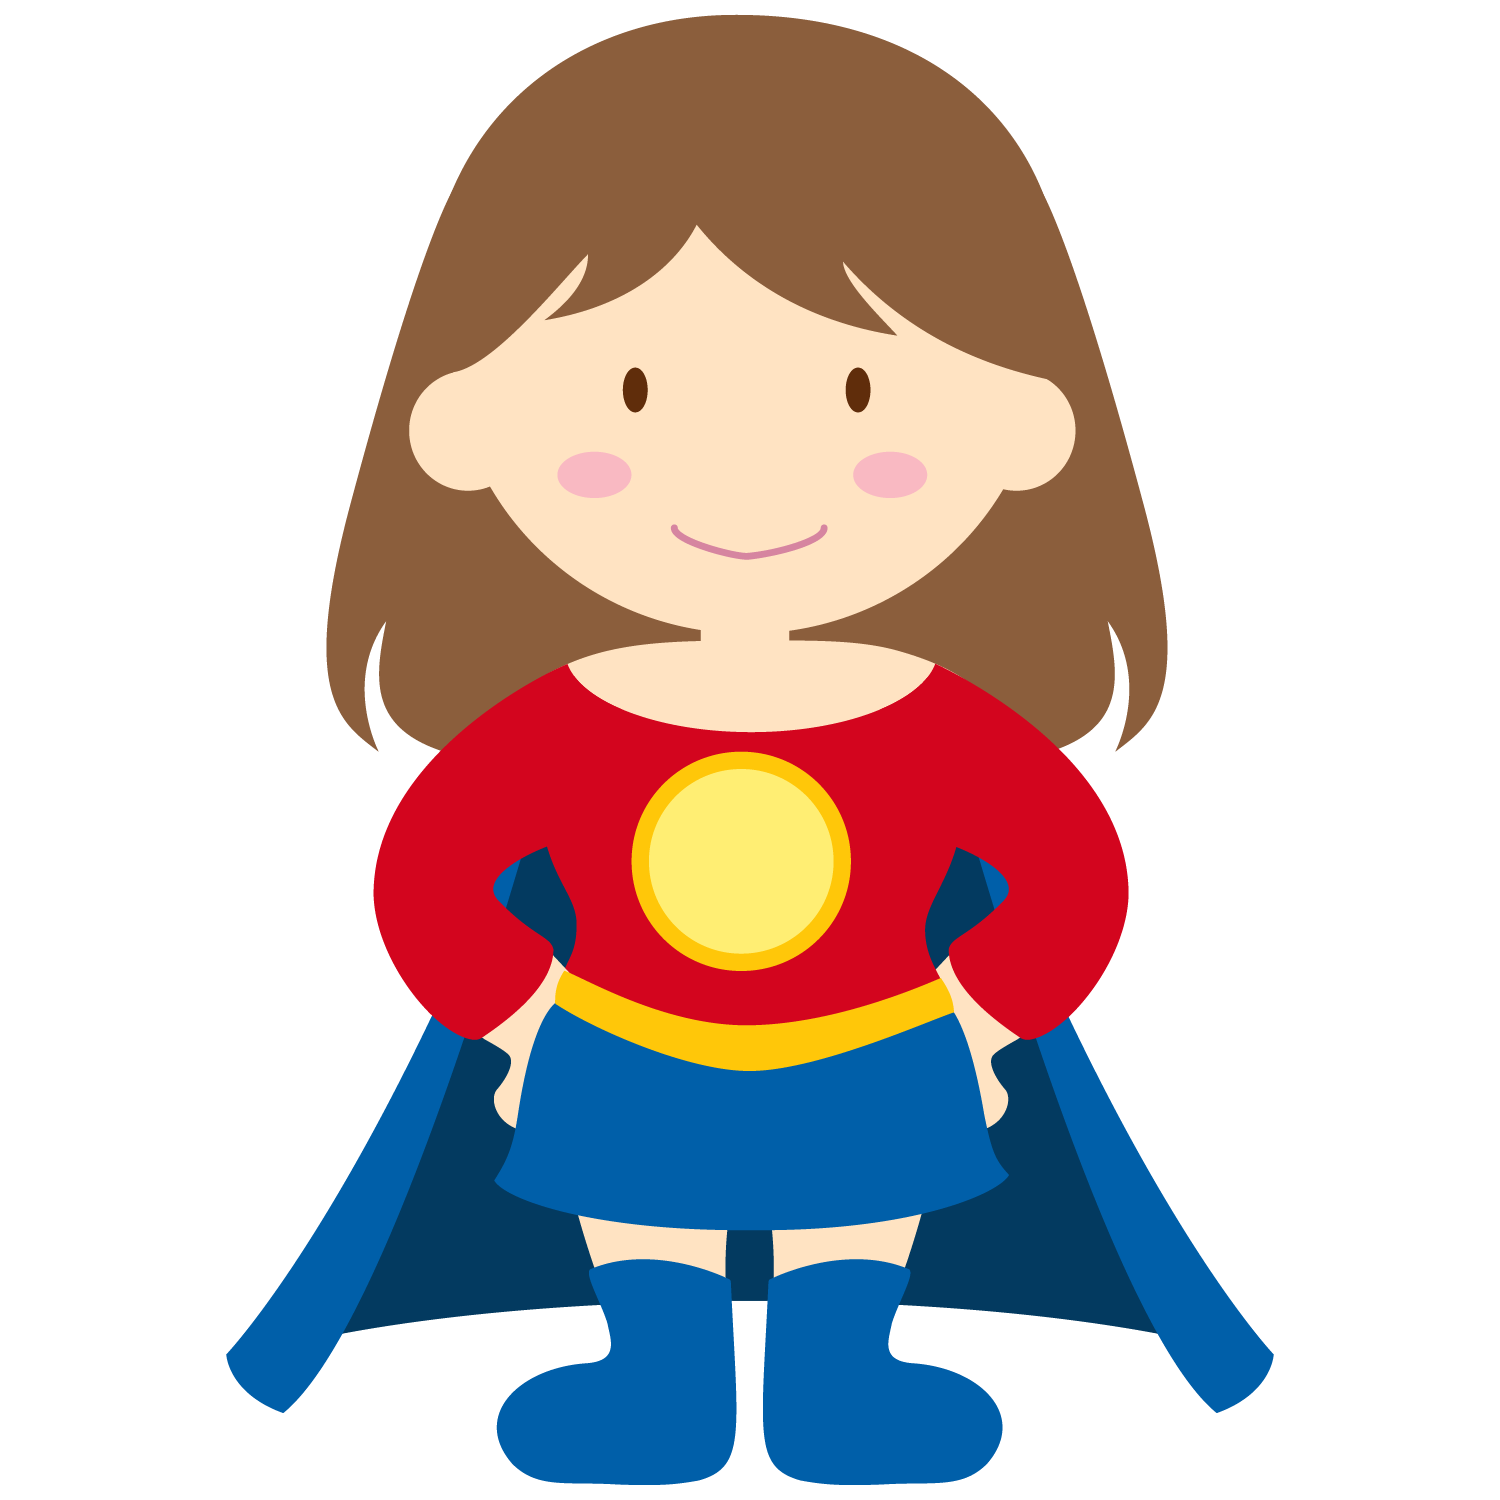 banner freeuse stock Hero clipart. Child free on dumielauxepices.